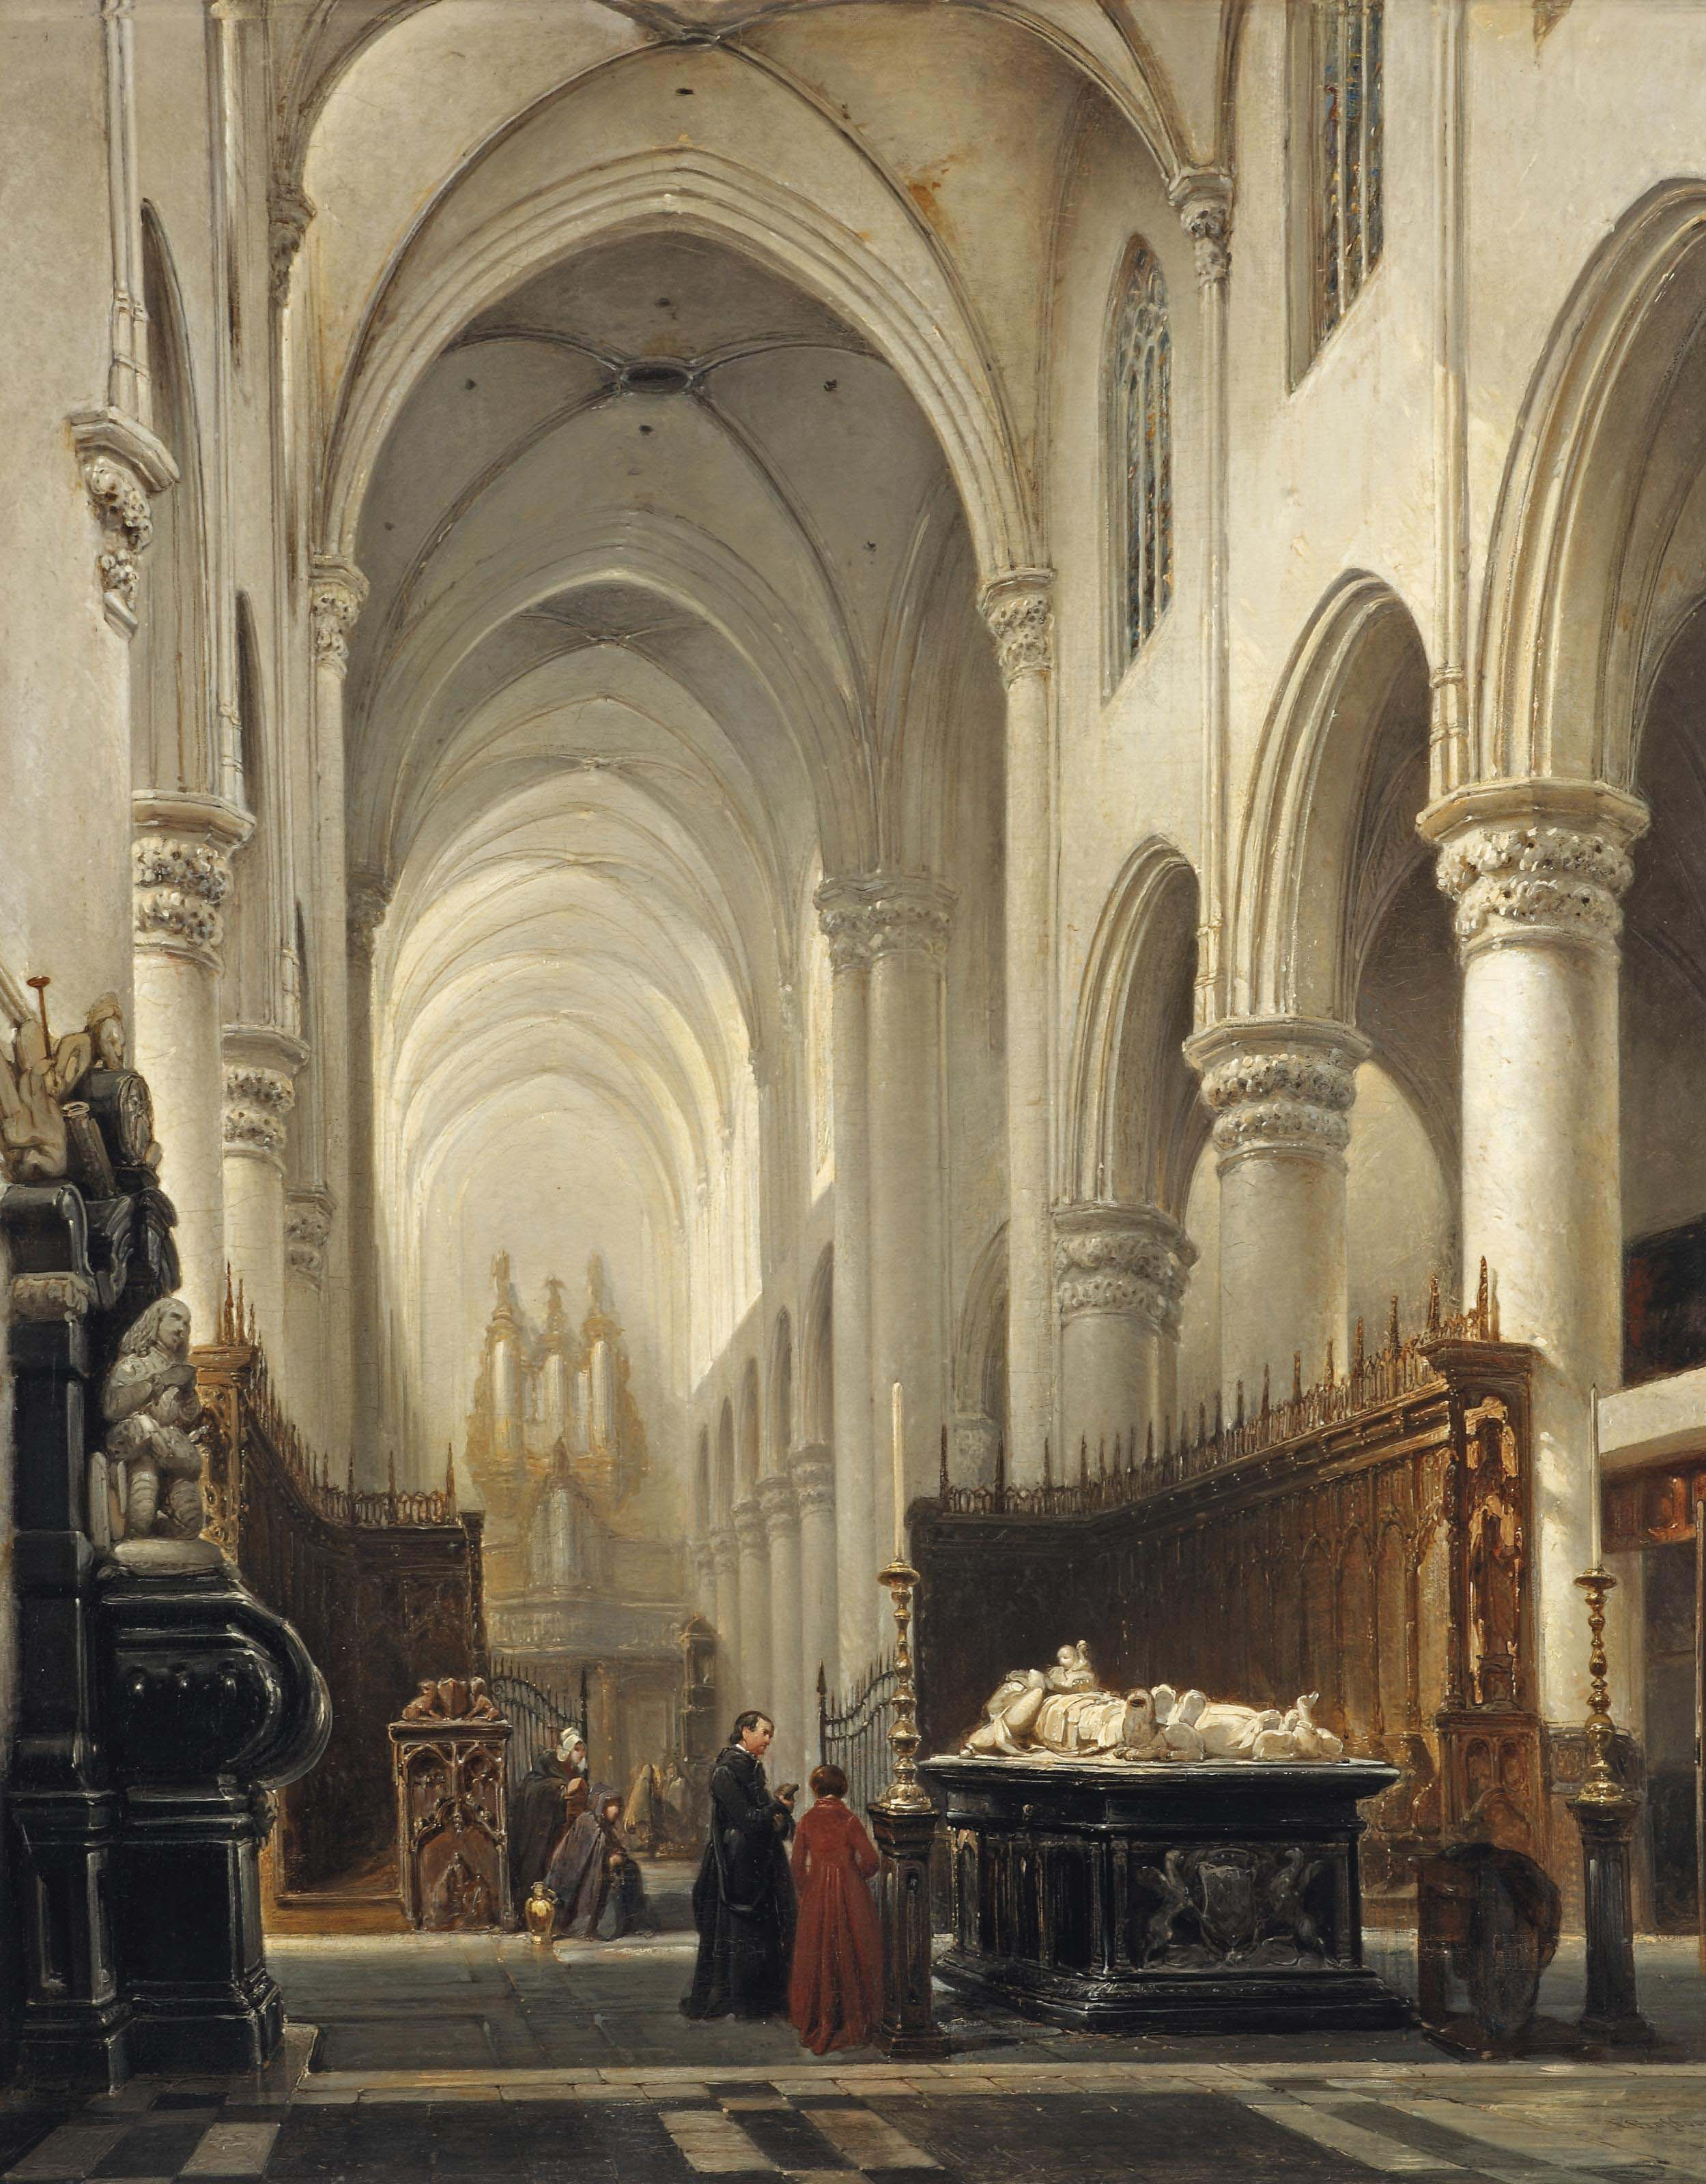 Johannes Bosboom (The Hague 1817-1891)